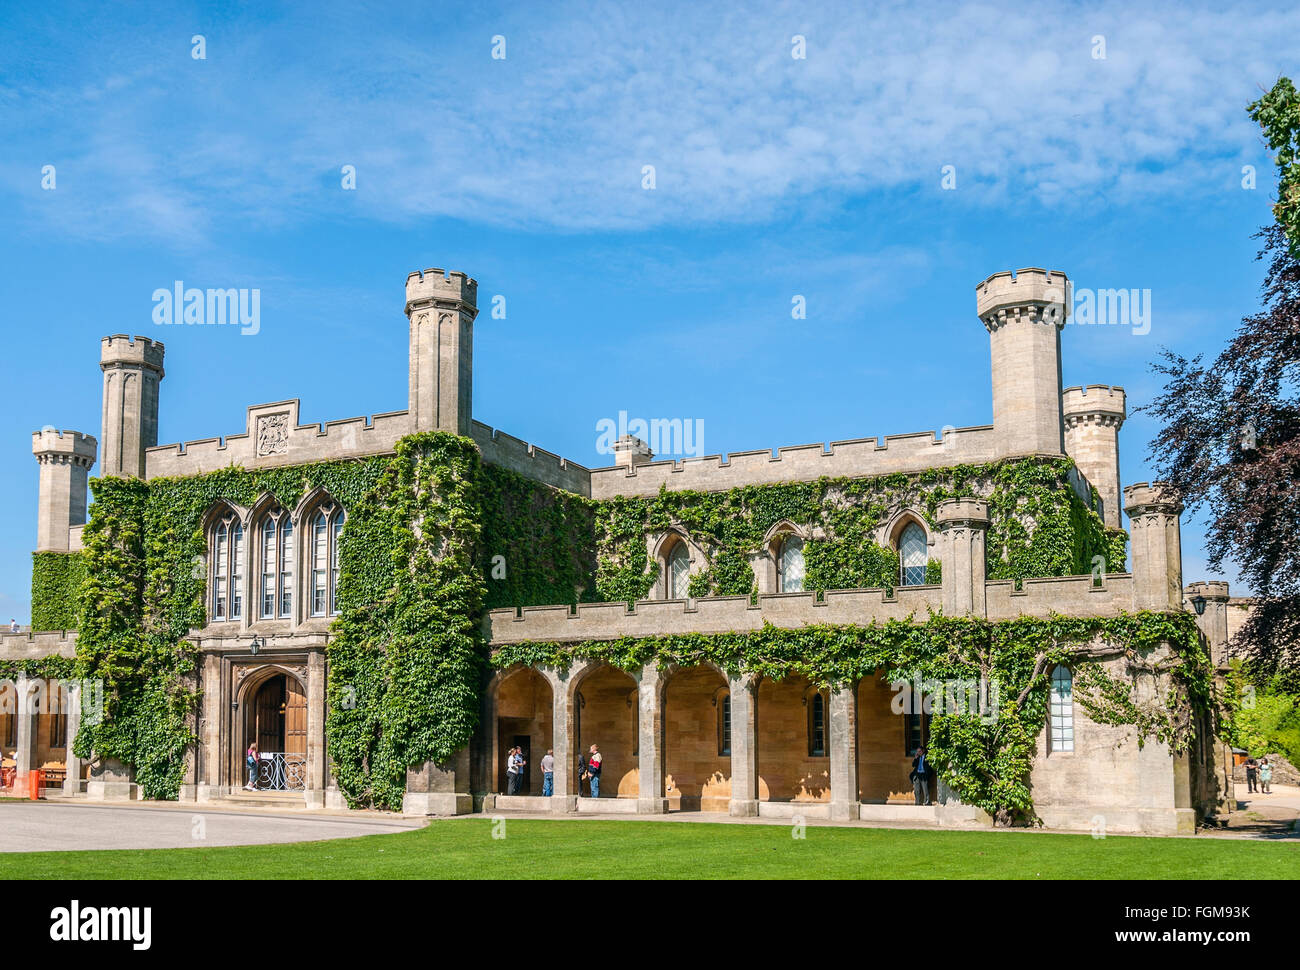 Lincoln Crown Court building inside the Lincoln Castle, Lincolnshire, England - Stock Image